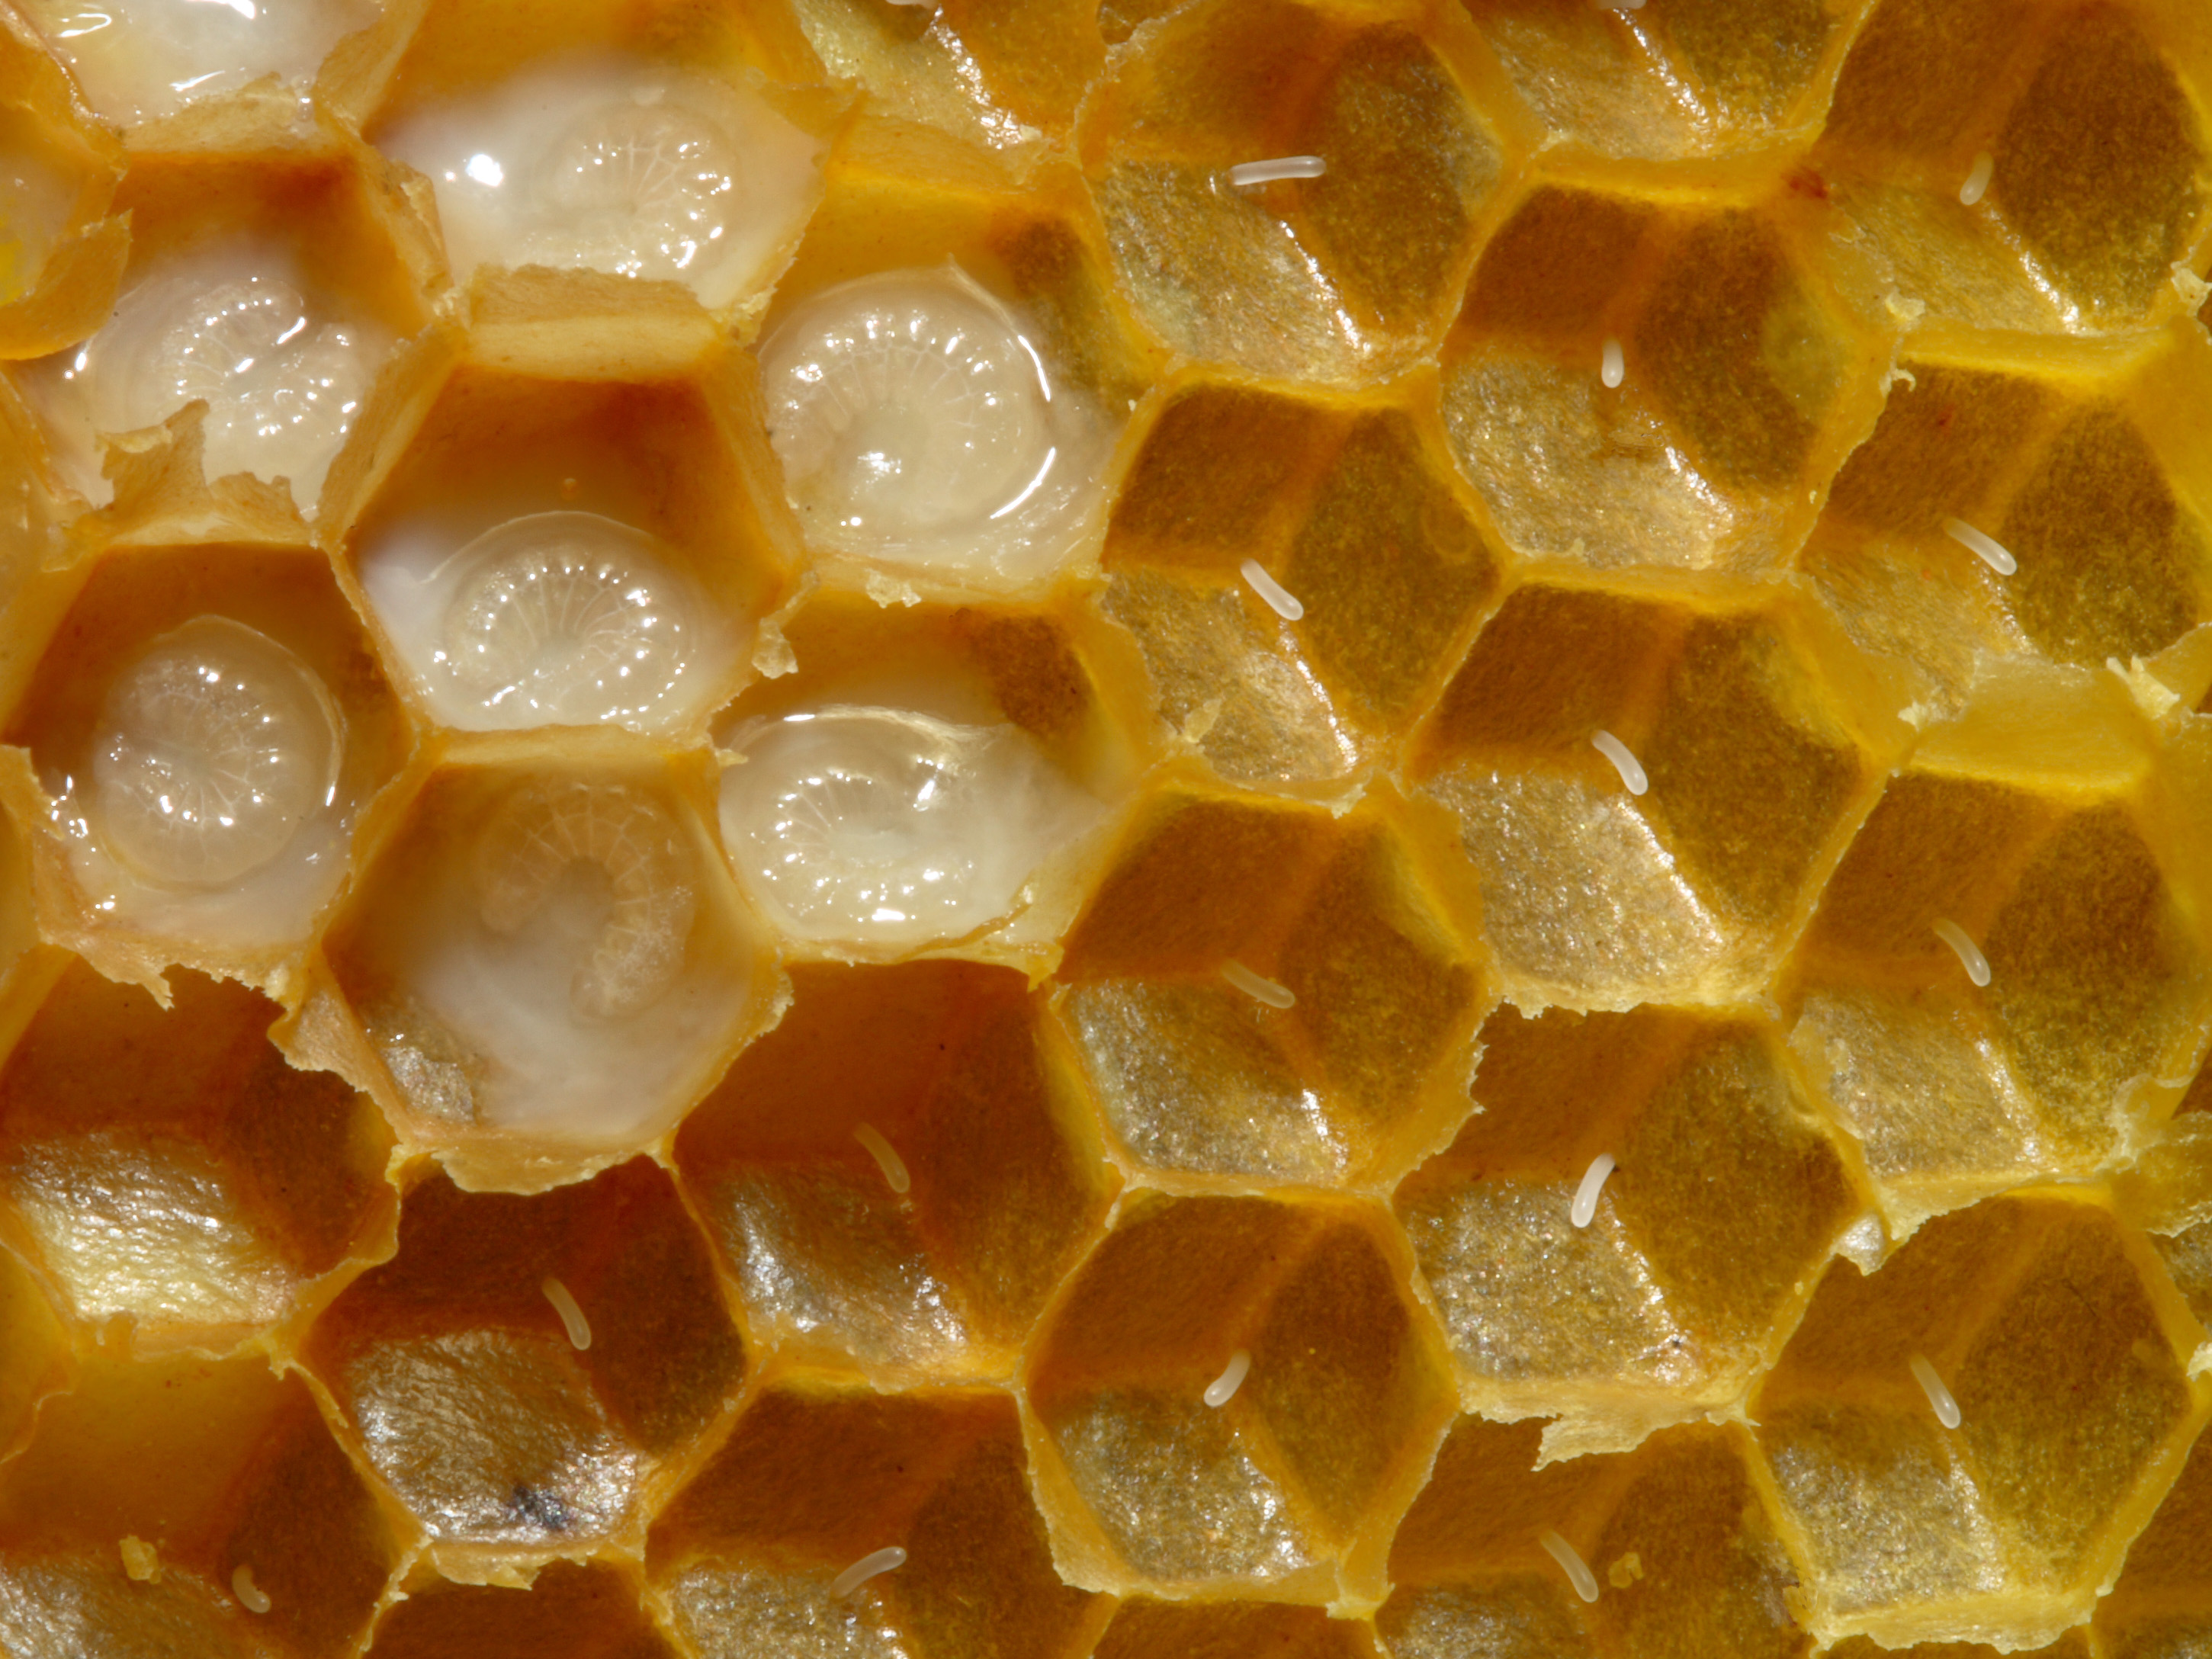 royal bee jelly for sale